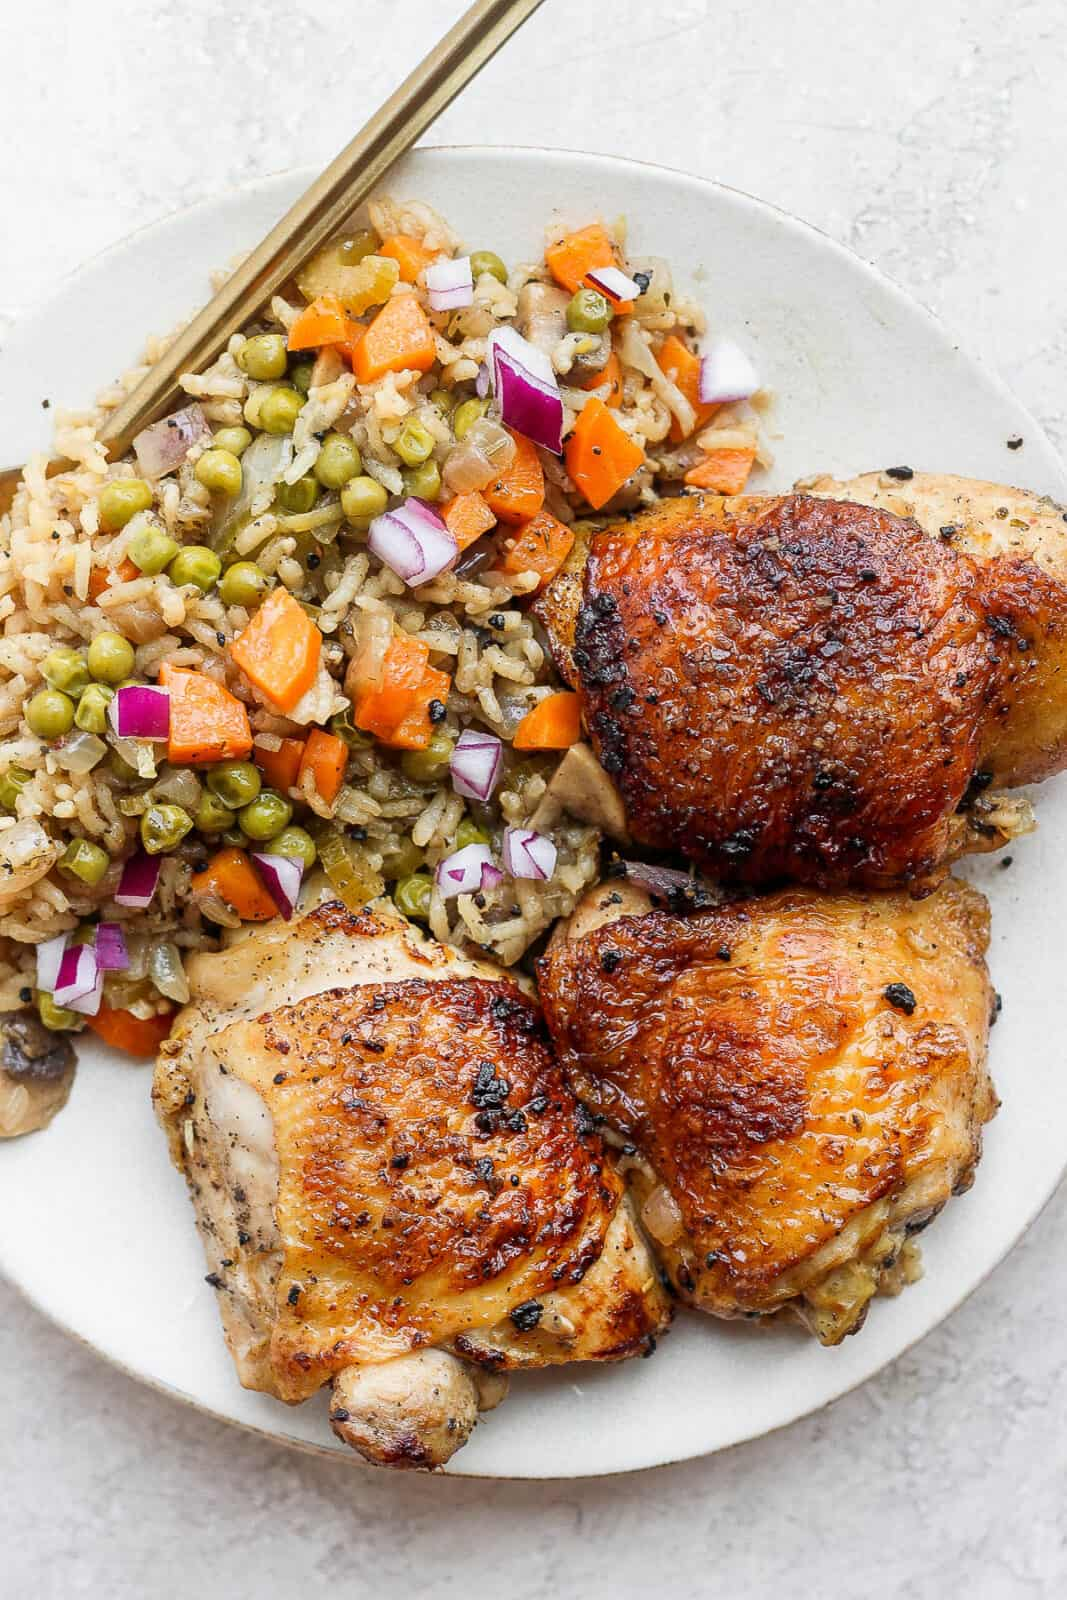 Baked chicken and rice on a plate.